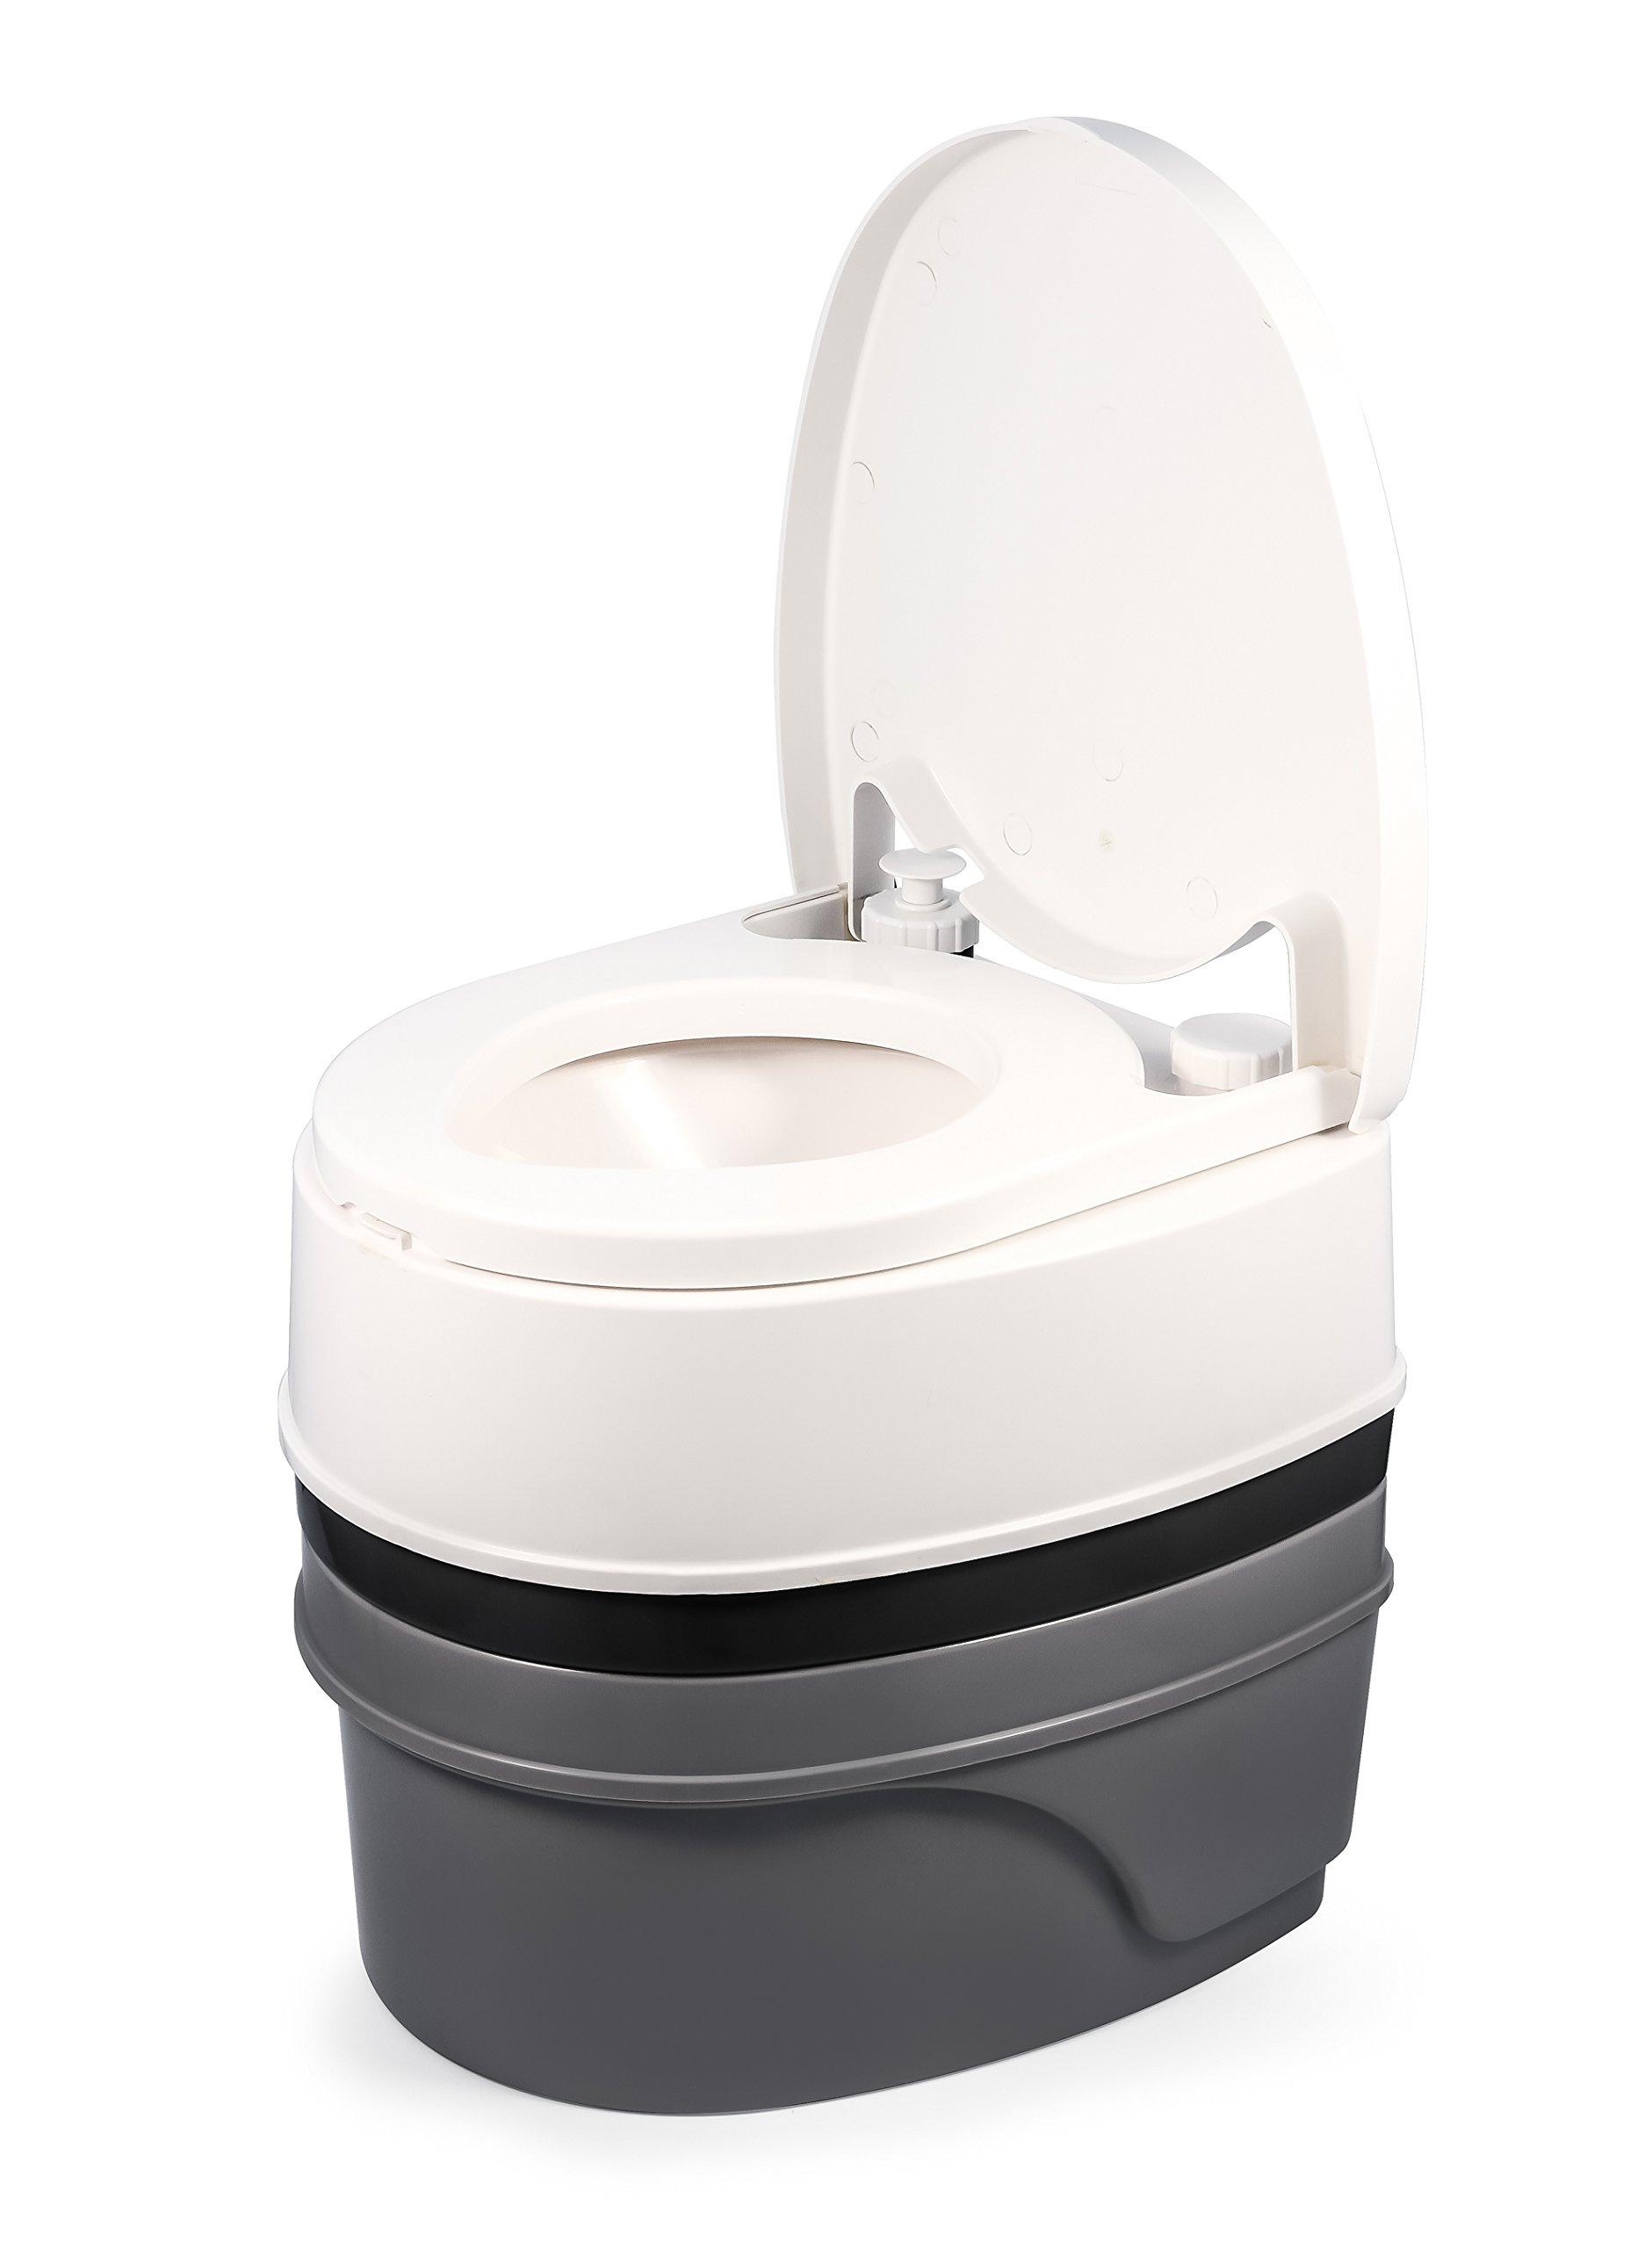 Camco Premium Travel Toilet with Detachable Tank- Simple Use and Maintenance | Excellent Outdoor Toilet Designed for Camping, Hiking, Boating, Rving and More | 5.3 Gallon Capacity Commode)(41544) by Camco